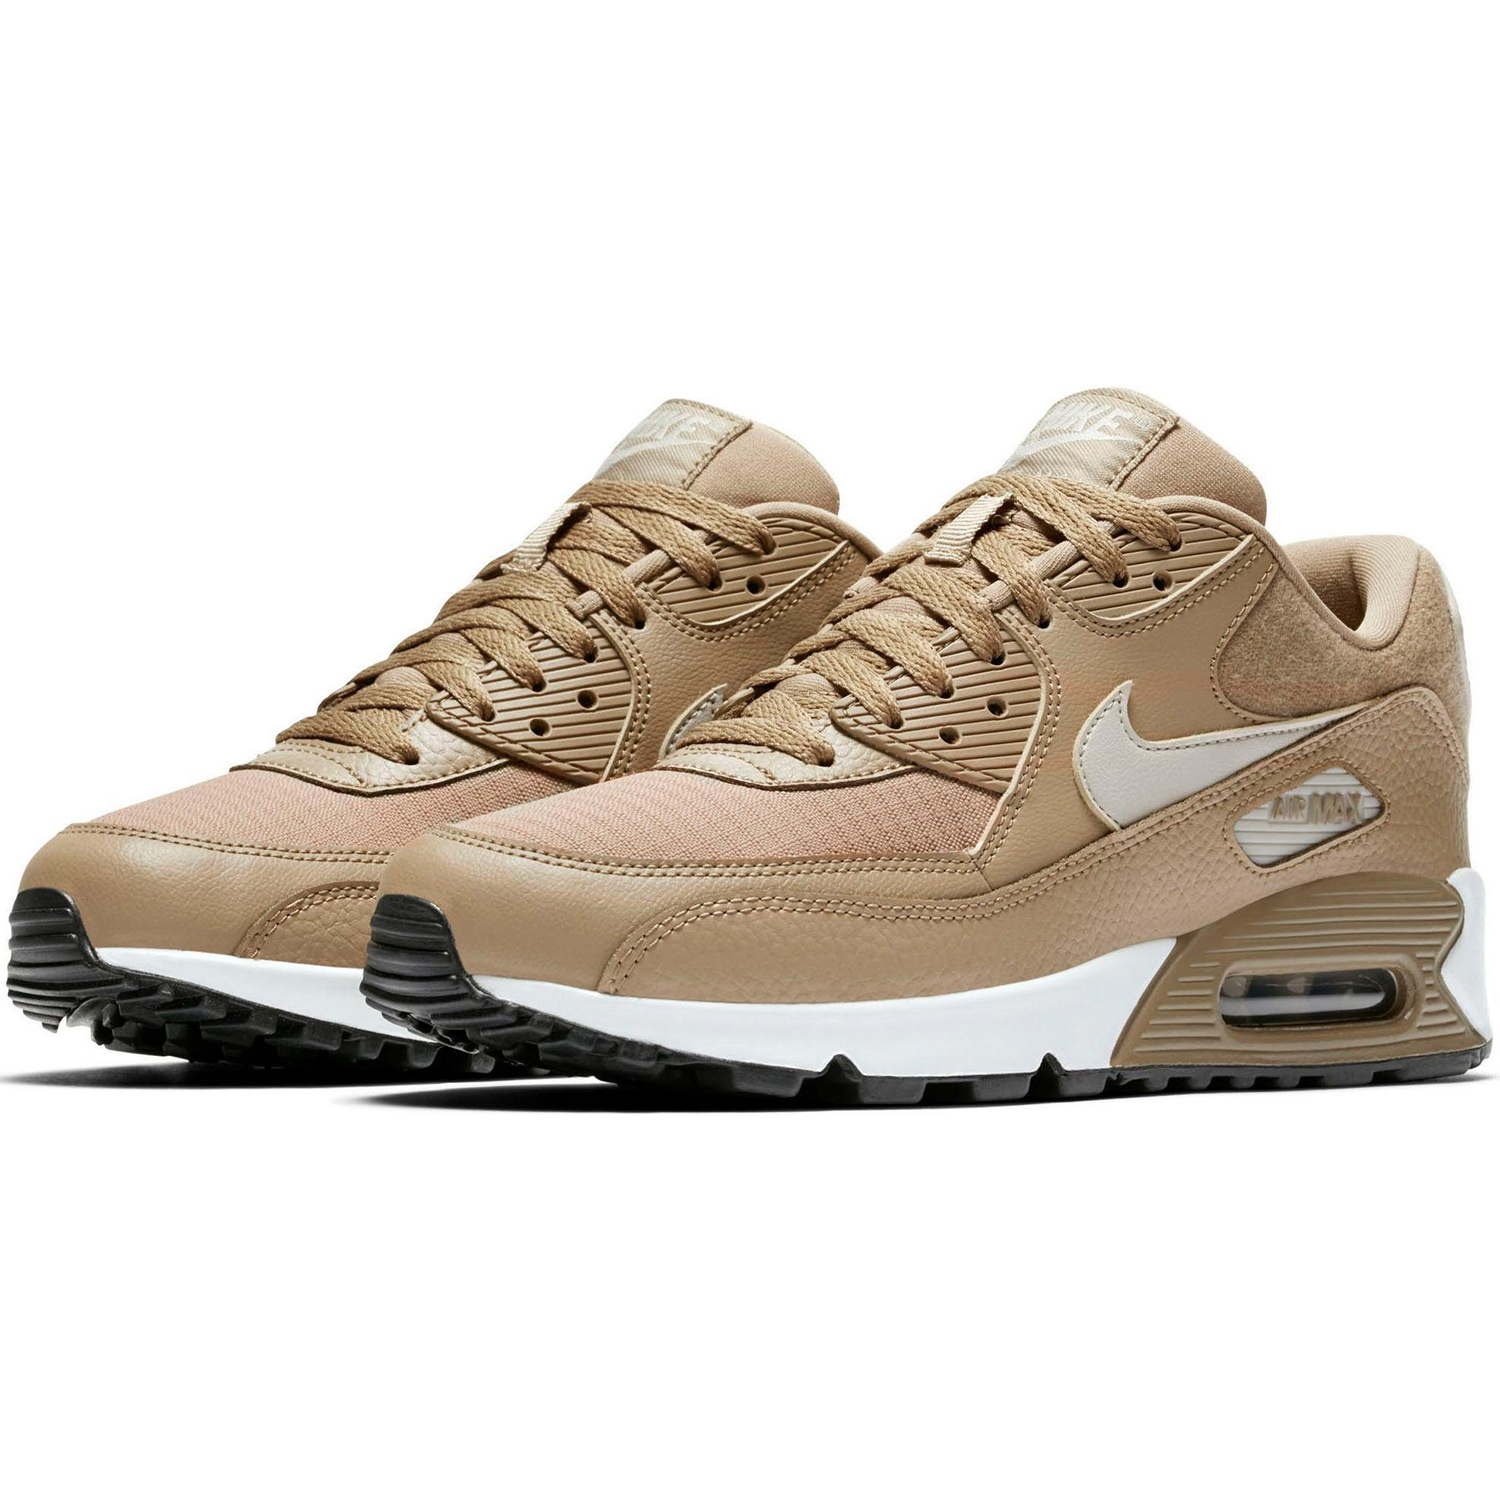 nike wmns air max 90 damen sneaker beige braun 325213 212. Black Bedroom Furniture Sets. Home Design Ideas